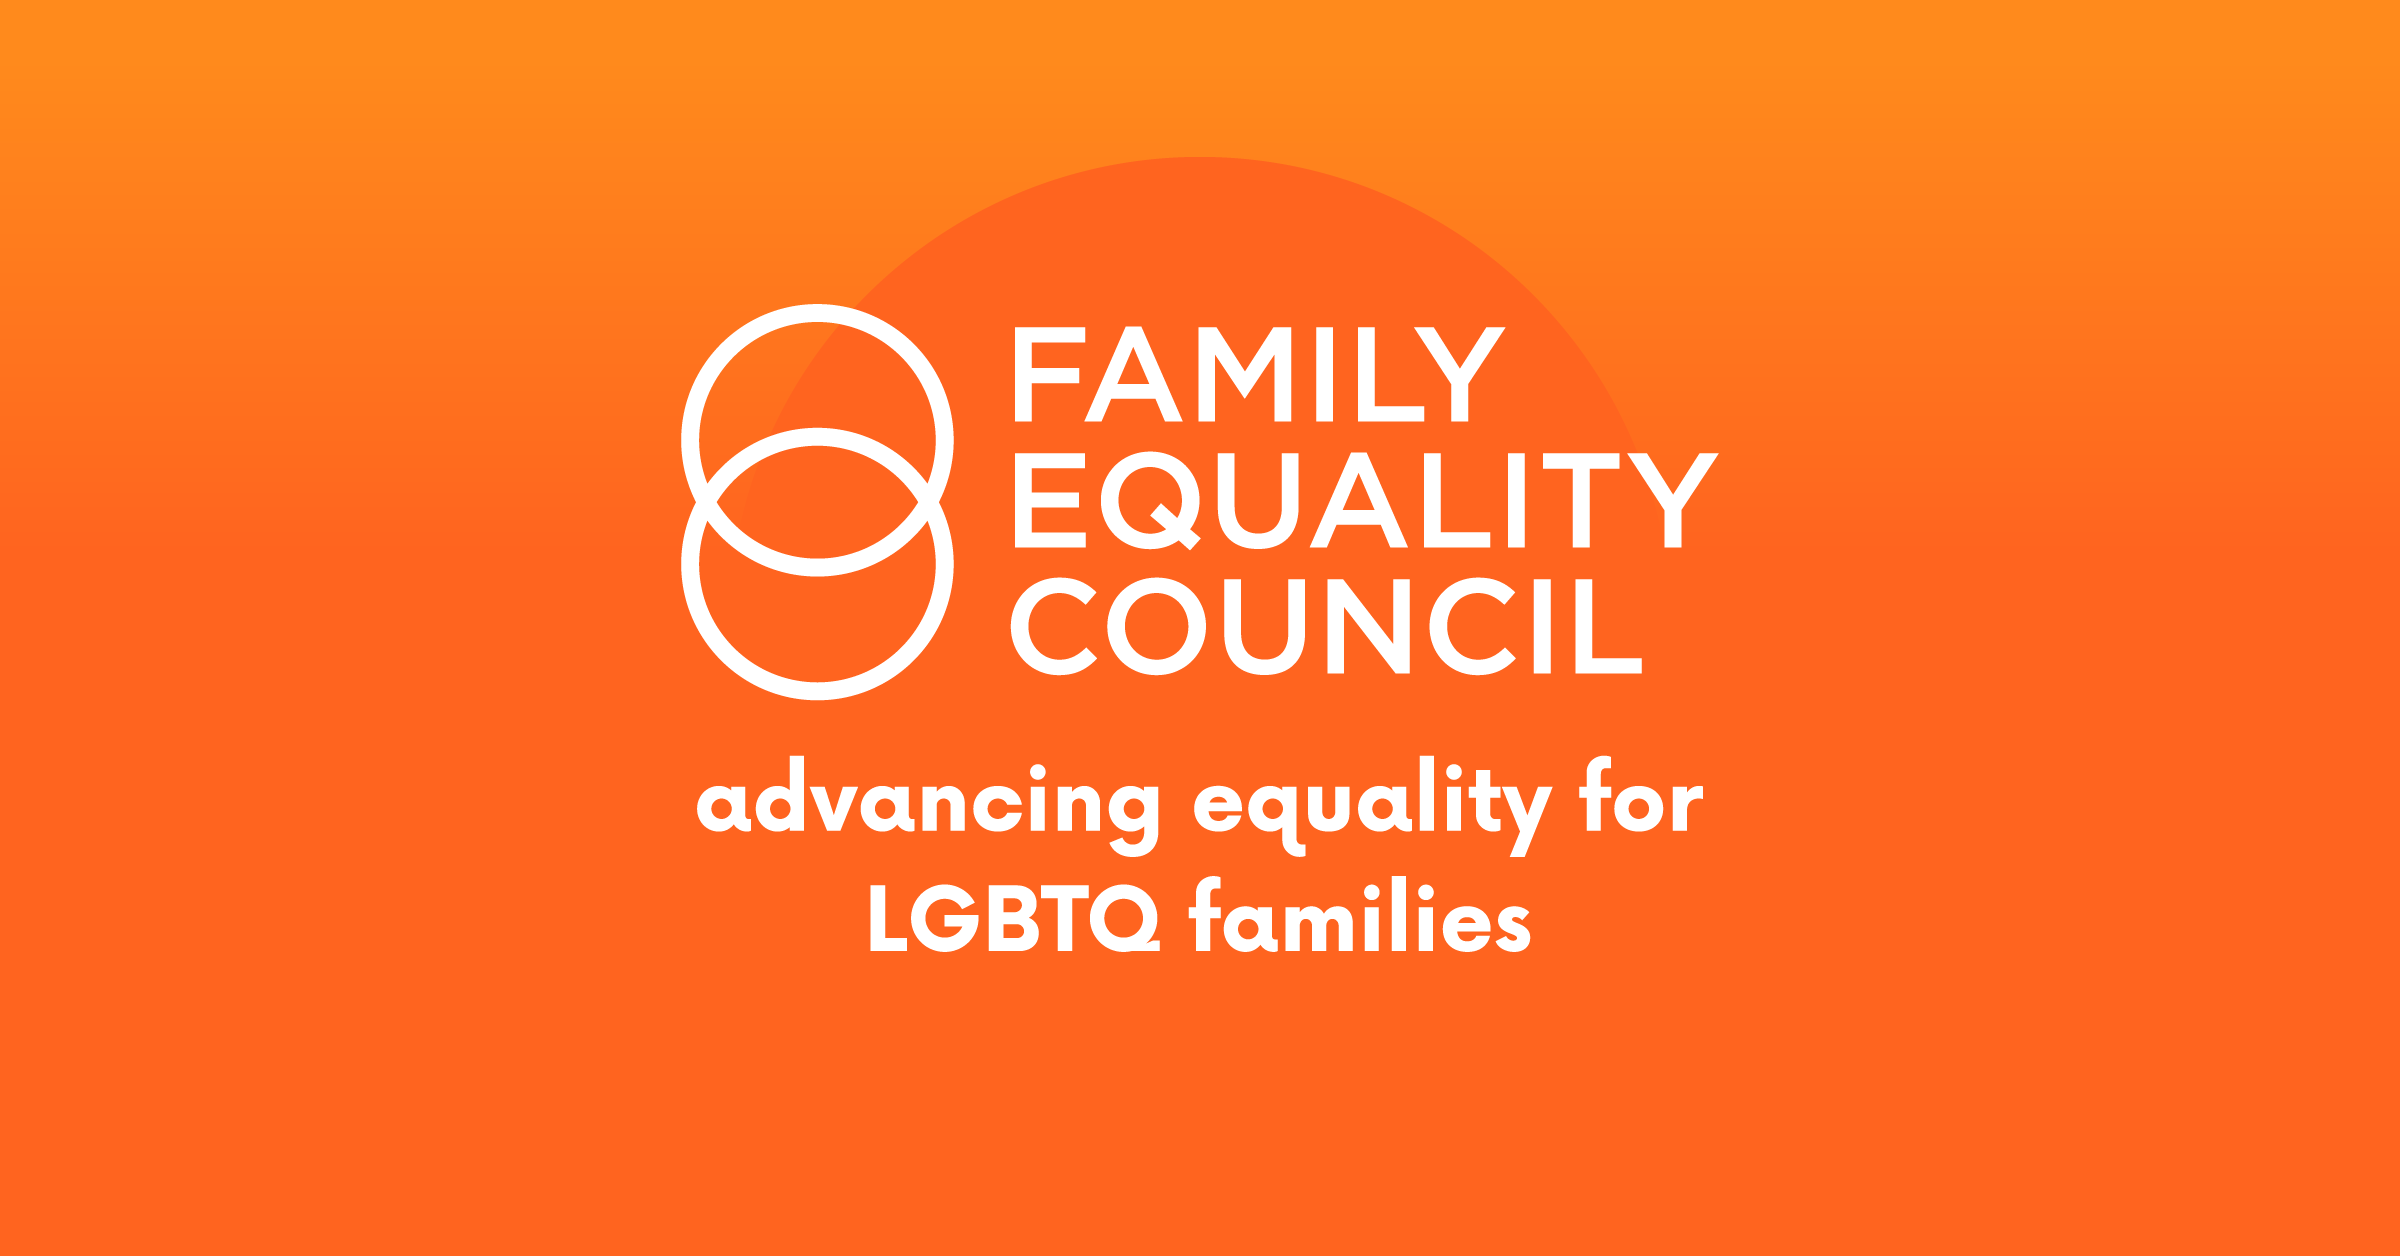 Advancing Equality for LGBTQ Families - Family Equality